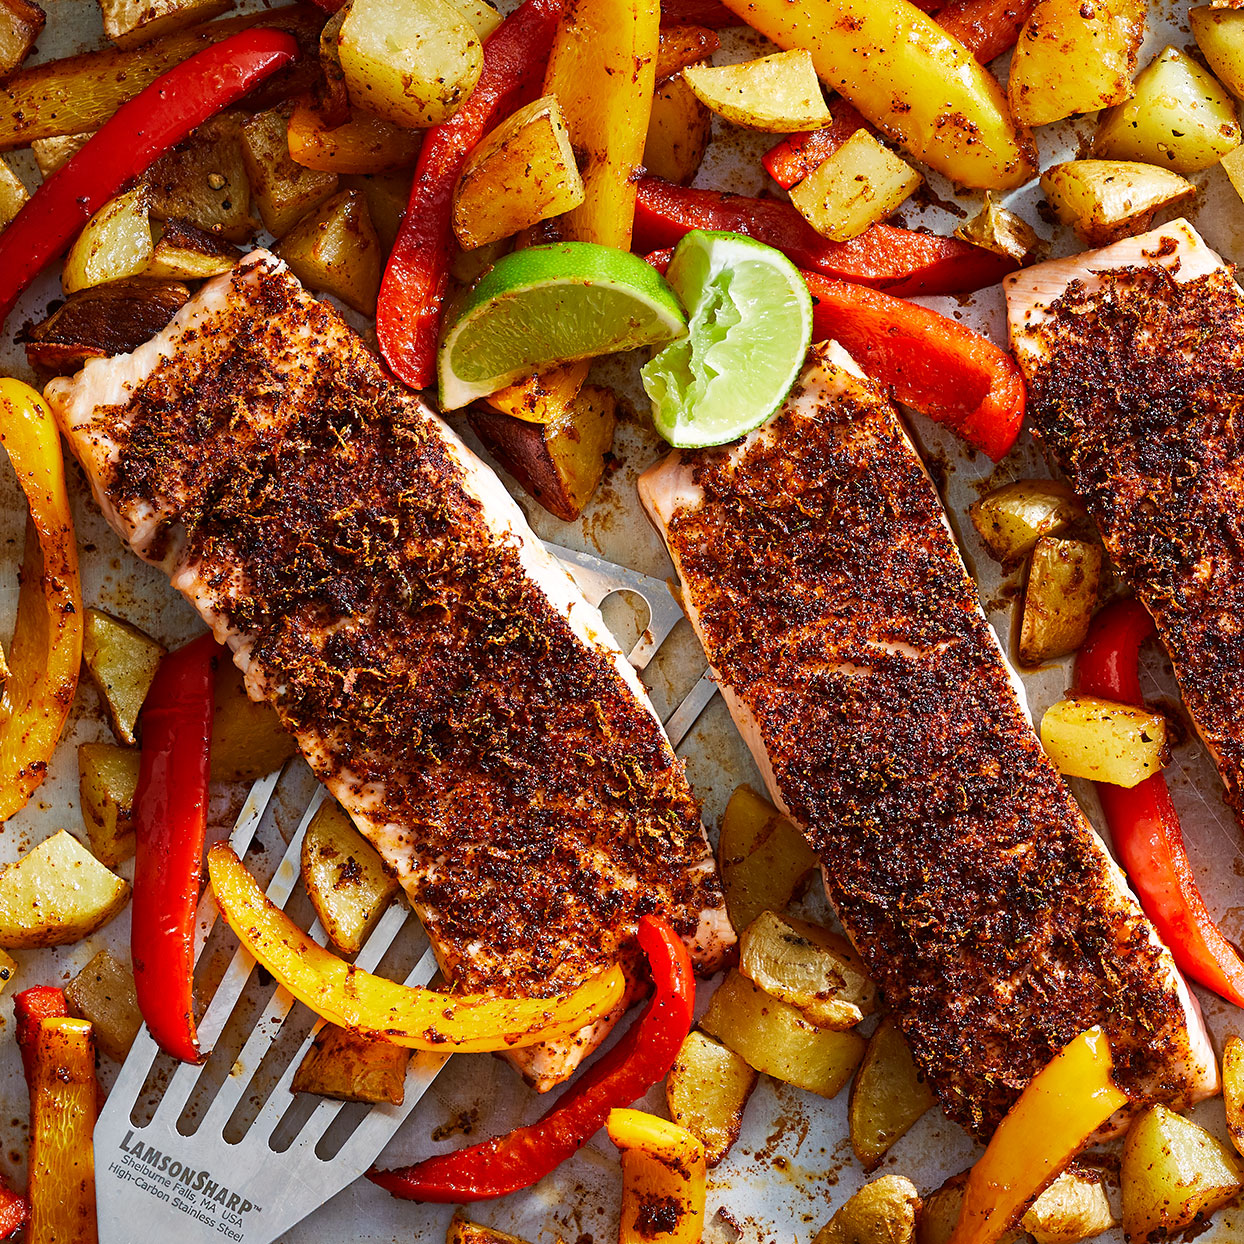 Busy weeknights beg for something simple like this salmon sheet-pan dinner. Like the name suggests, it's all cooked on one pan. The potatoes get a head start, followed by sweet bell peppers and finally chili-coated salmon fillets. It's a complete meal with easy cleanup! Source: EatingWell.com, February 2020